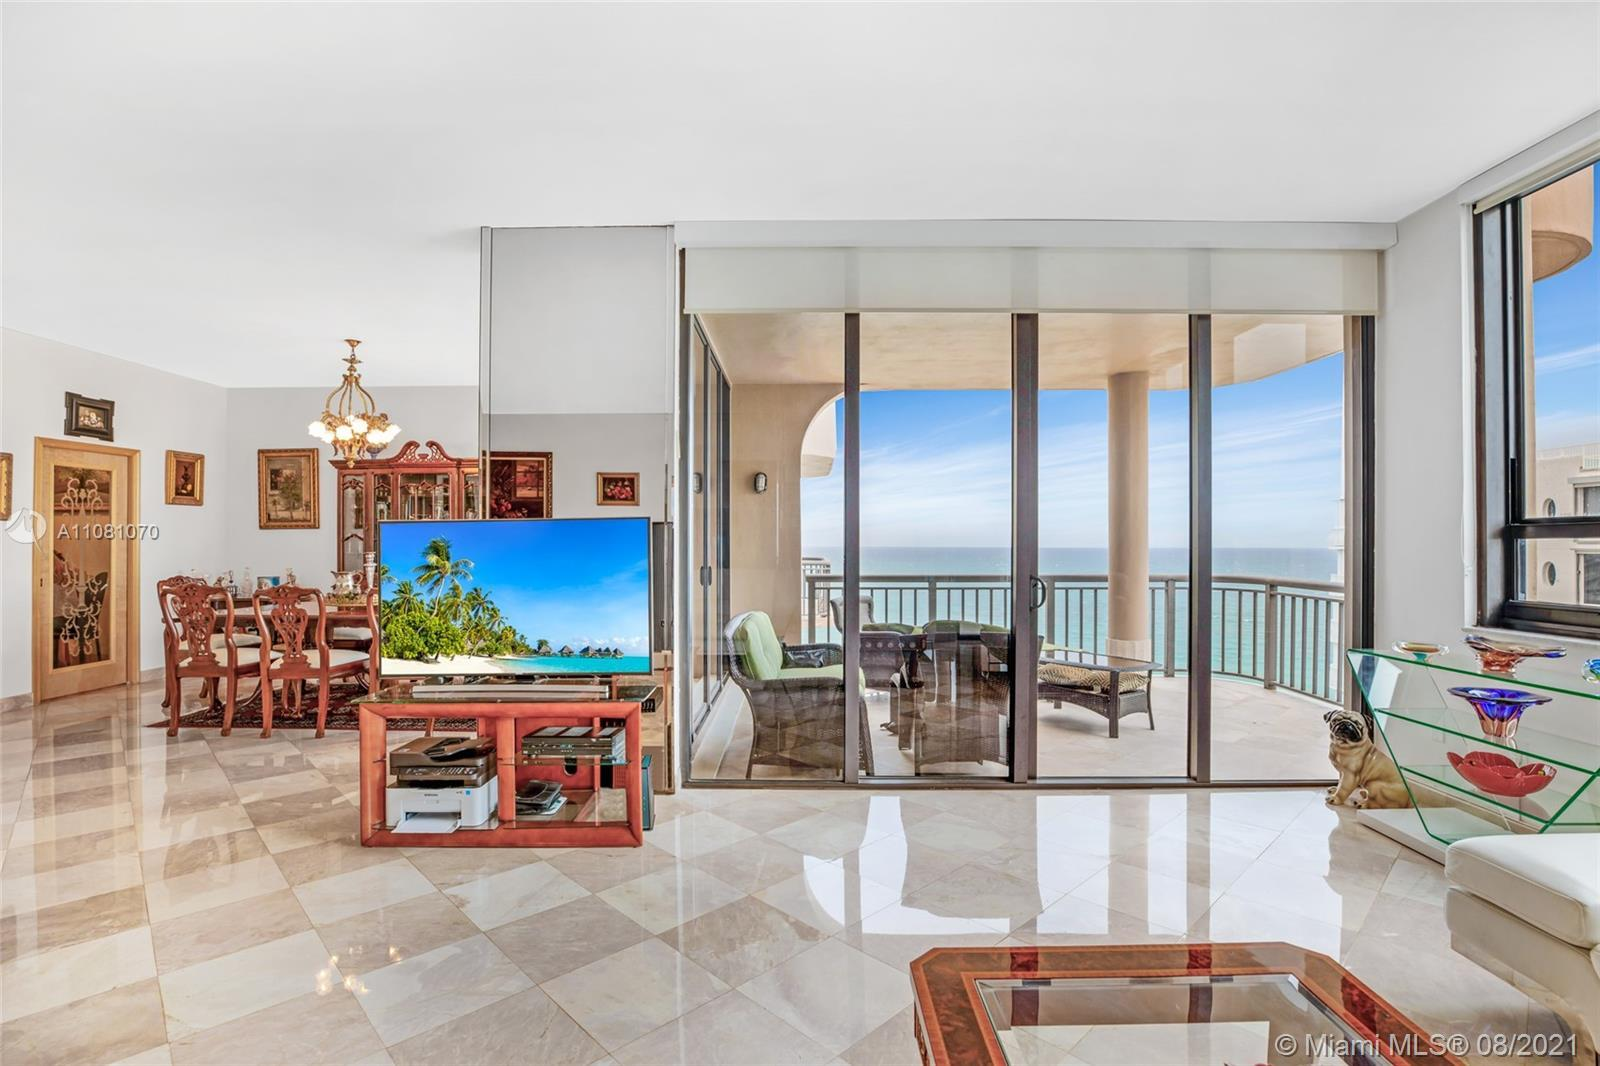 Rare and unique penthouse in the sky. Wake up to breathtaking views of the ocean, blue skies & beach